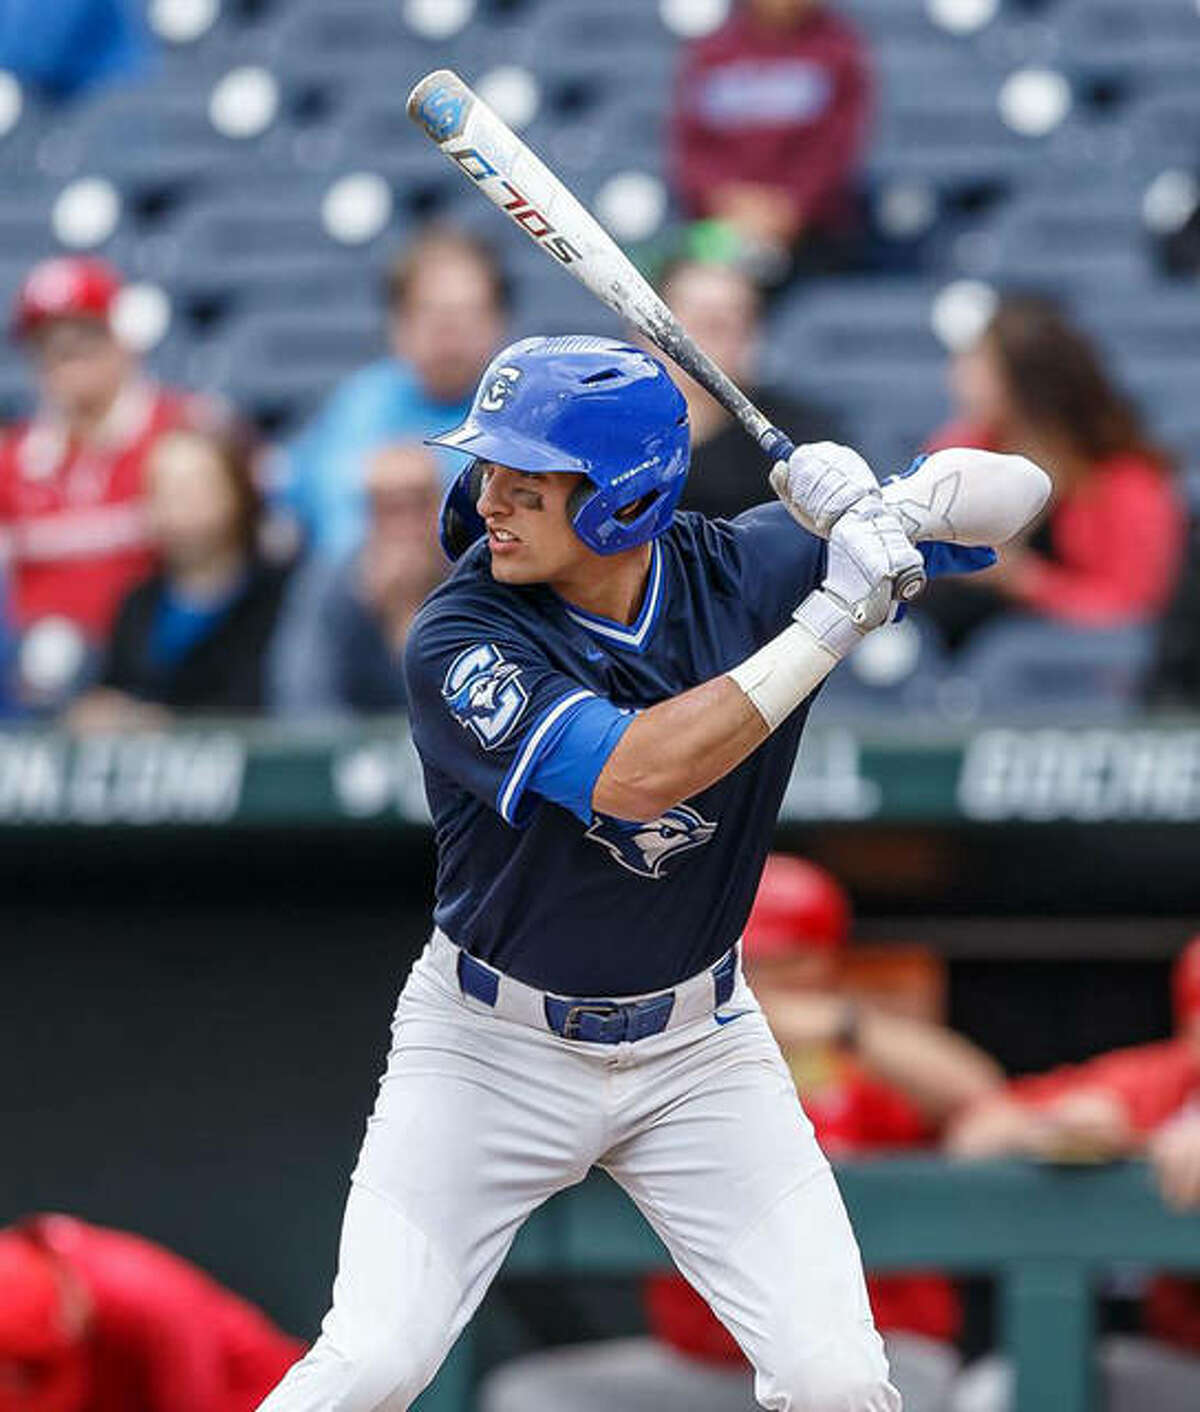 Jordan Hovey in action for the Creighton Bluejays during his college days. He recently signed with the Kansas City Royals.